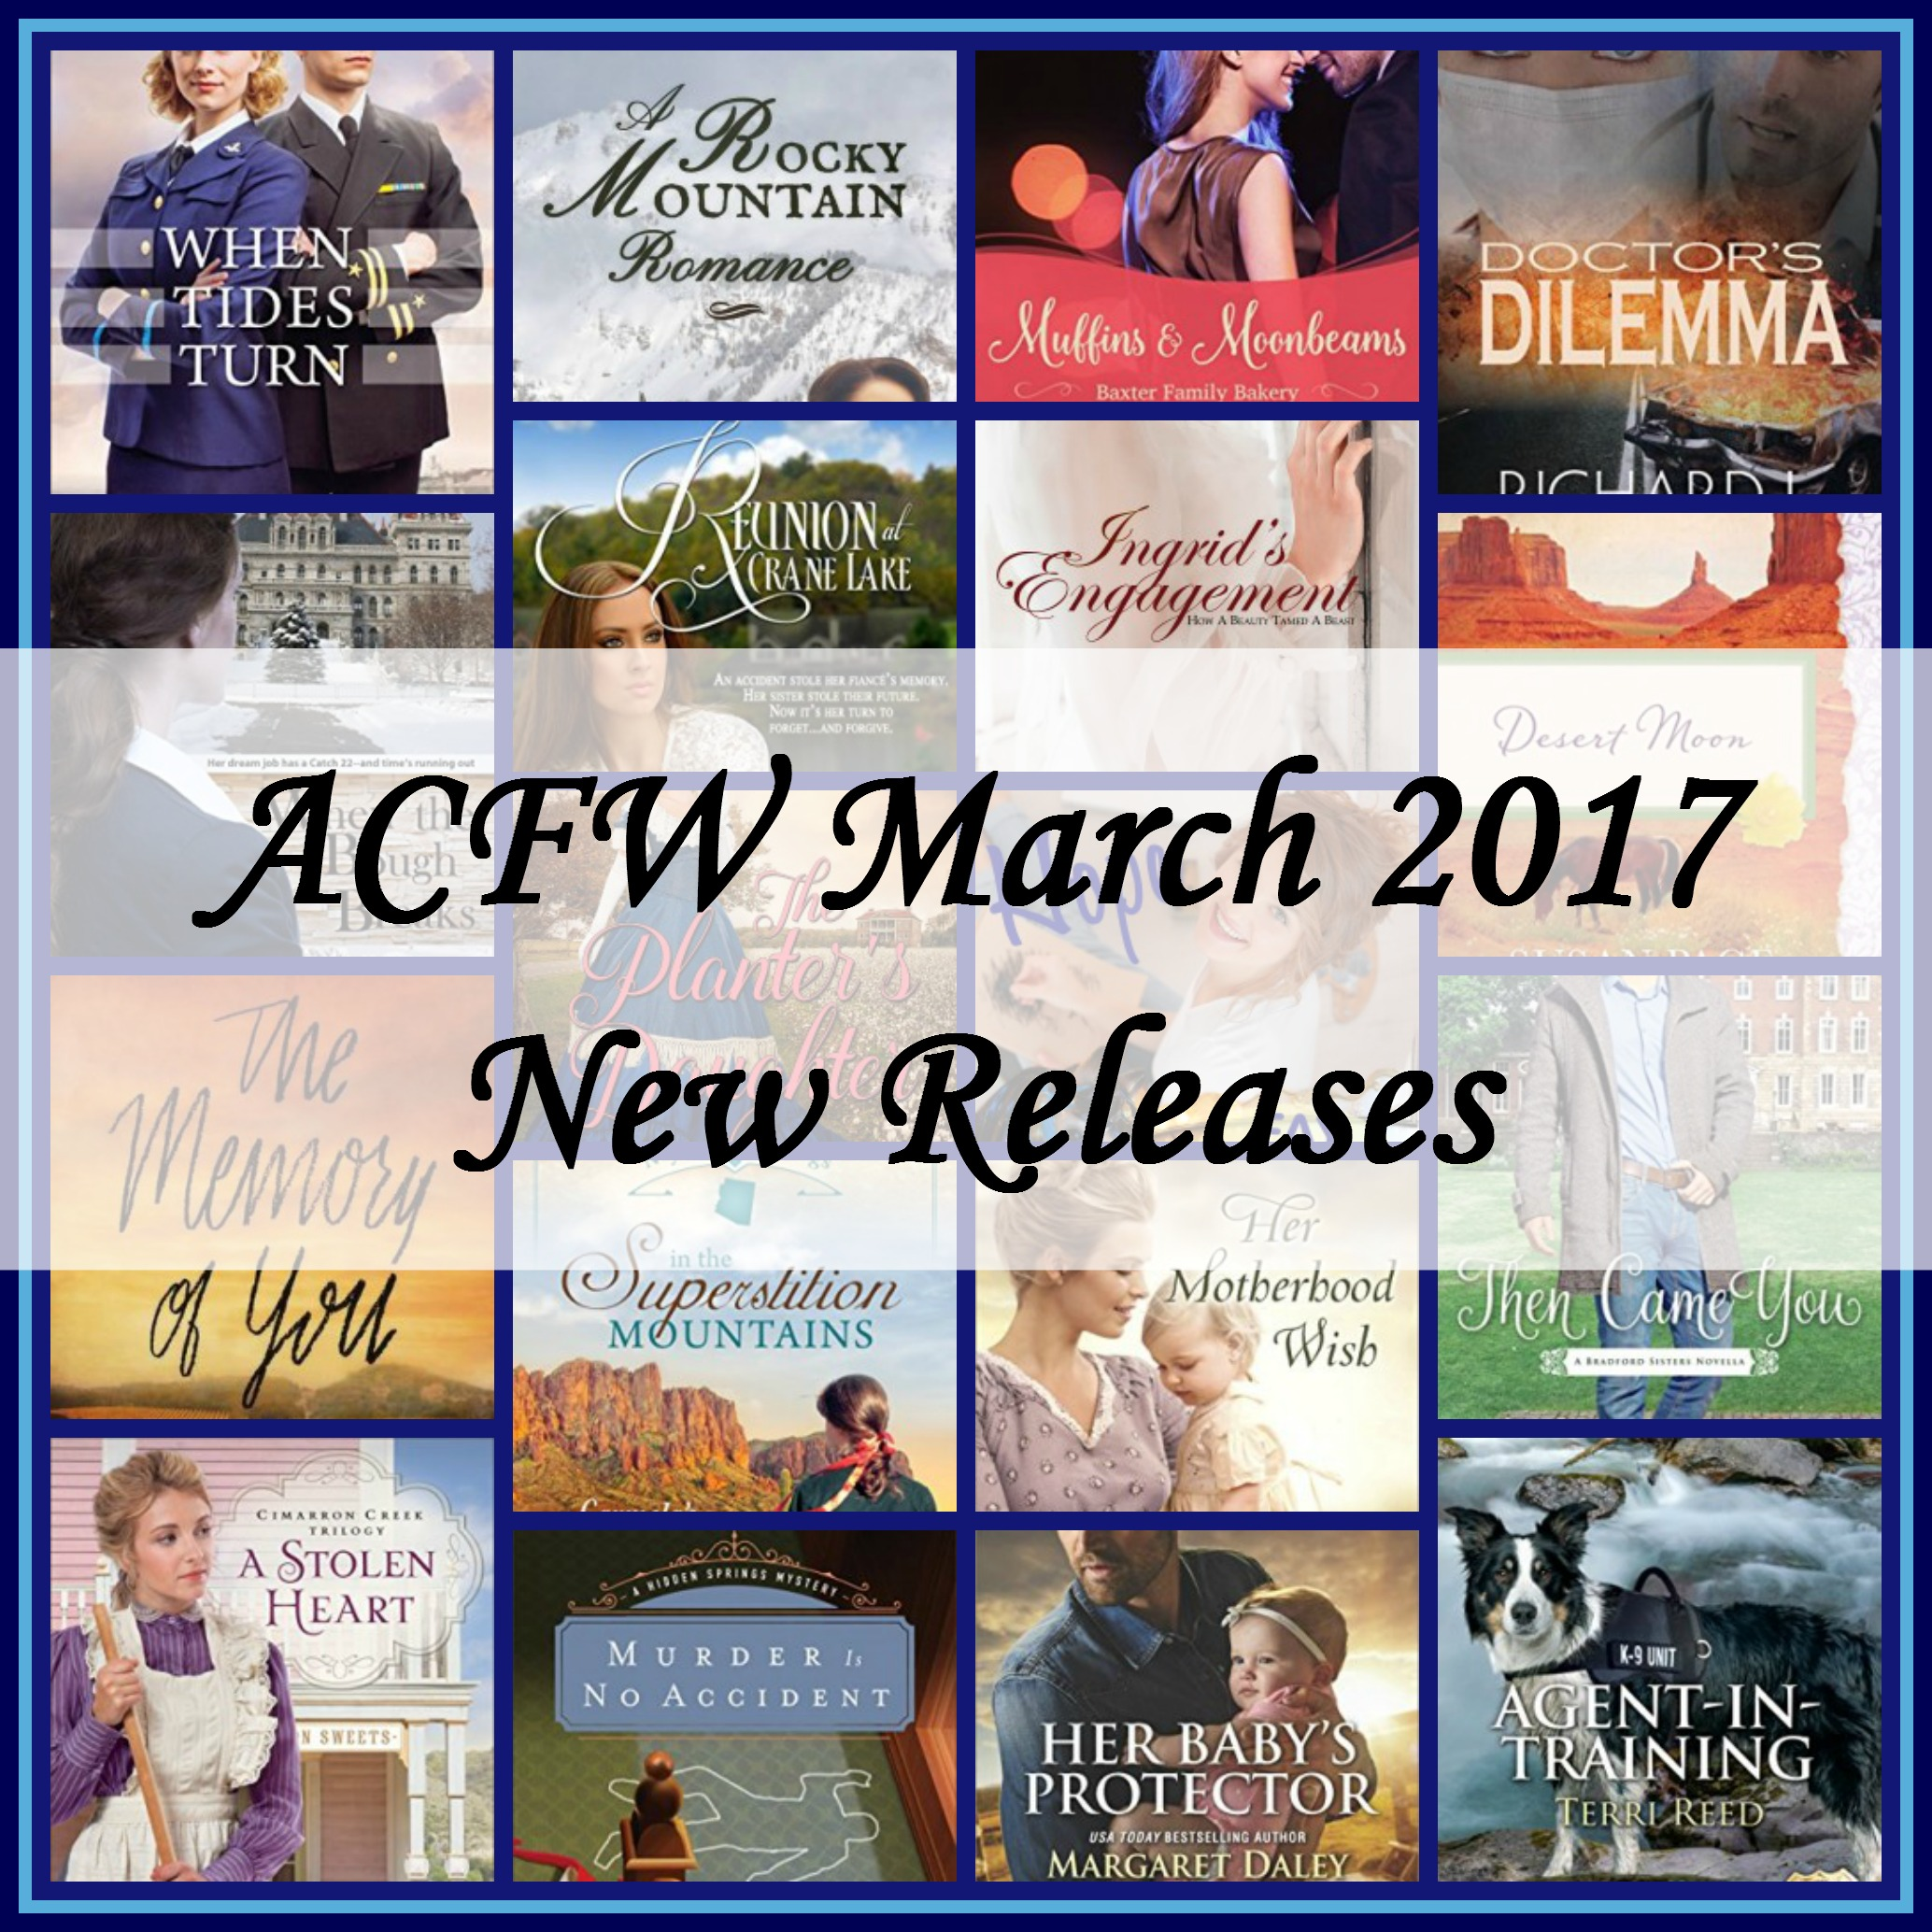 March 2017 New Releases from ACFW Authors